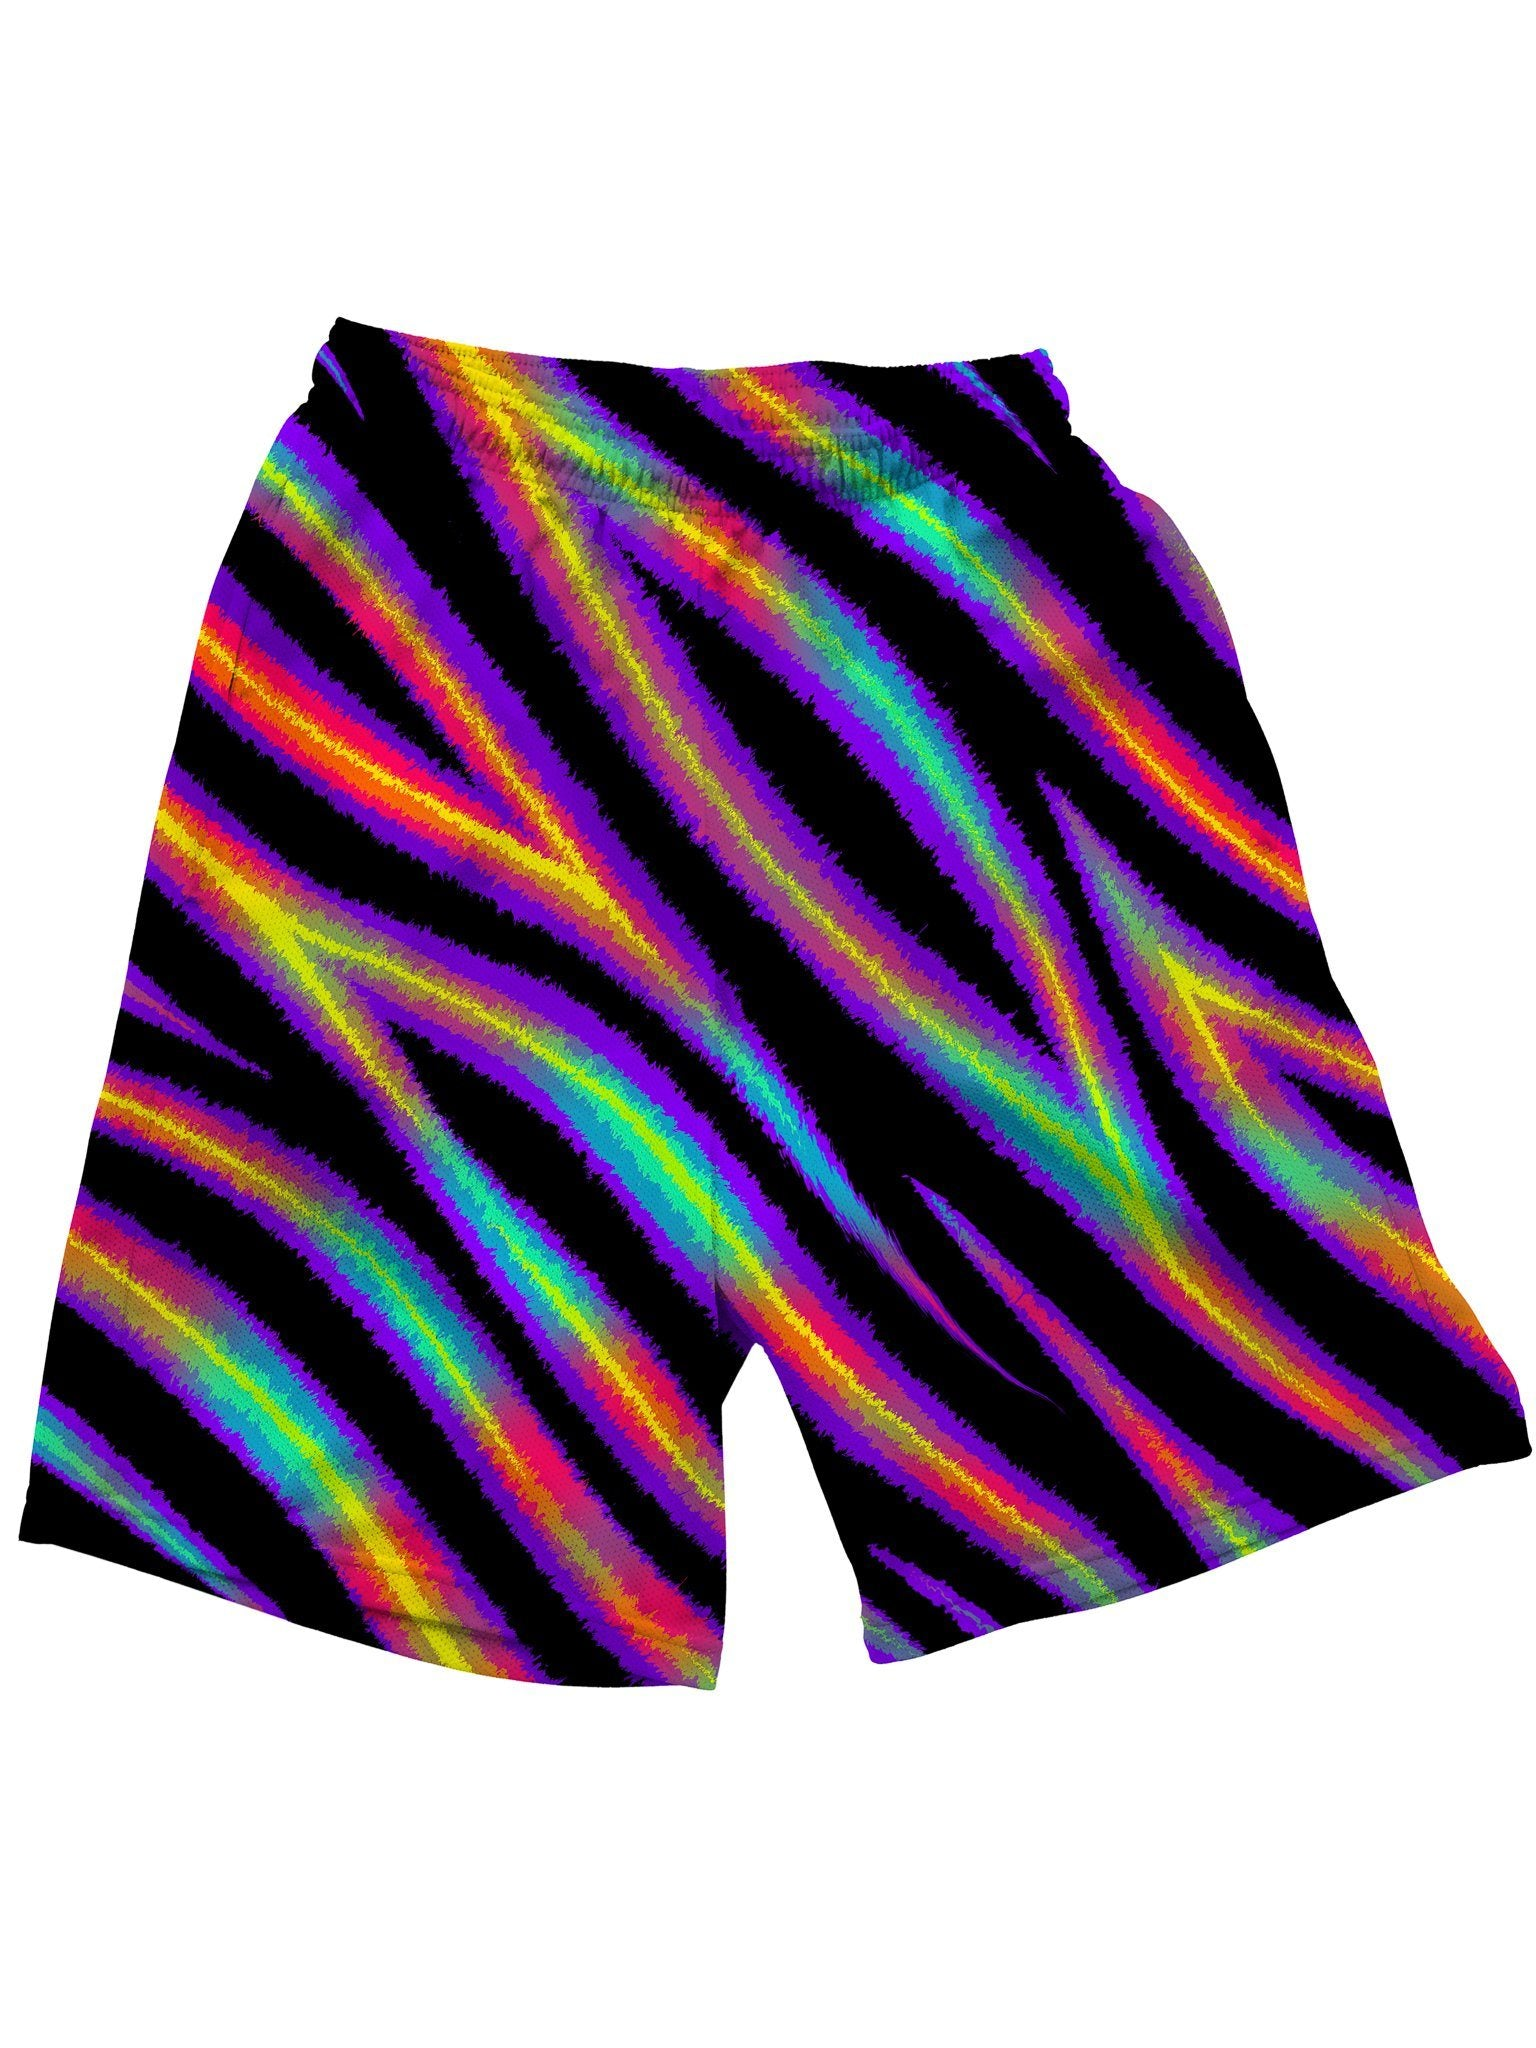 Tiger Stripes (Colorful) Shorts Mens Shorts Electro Threads